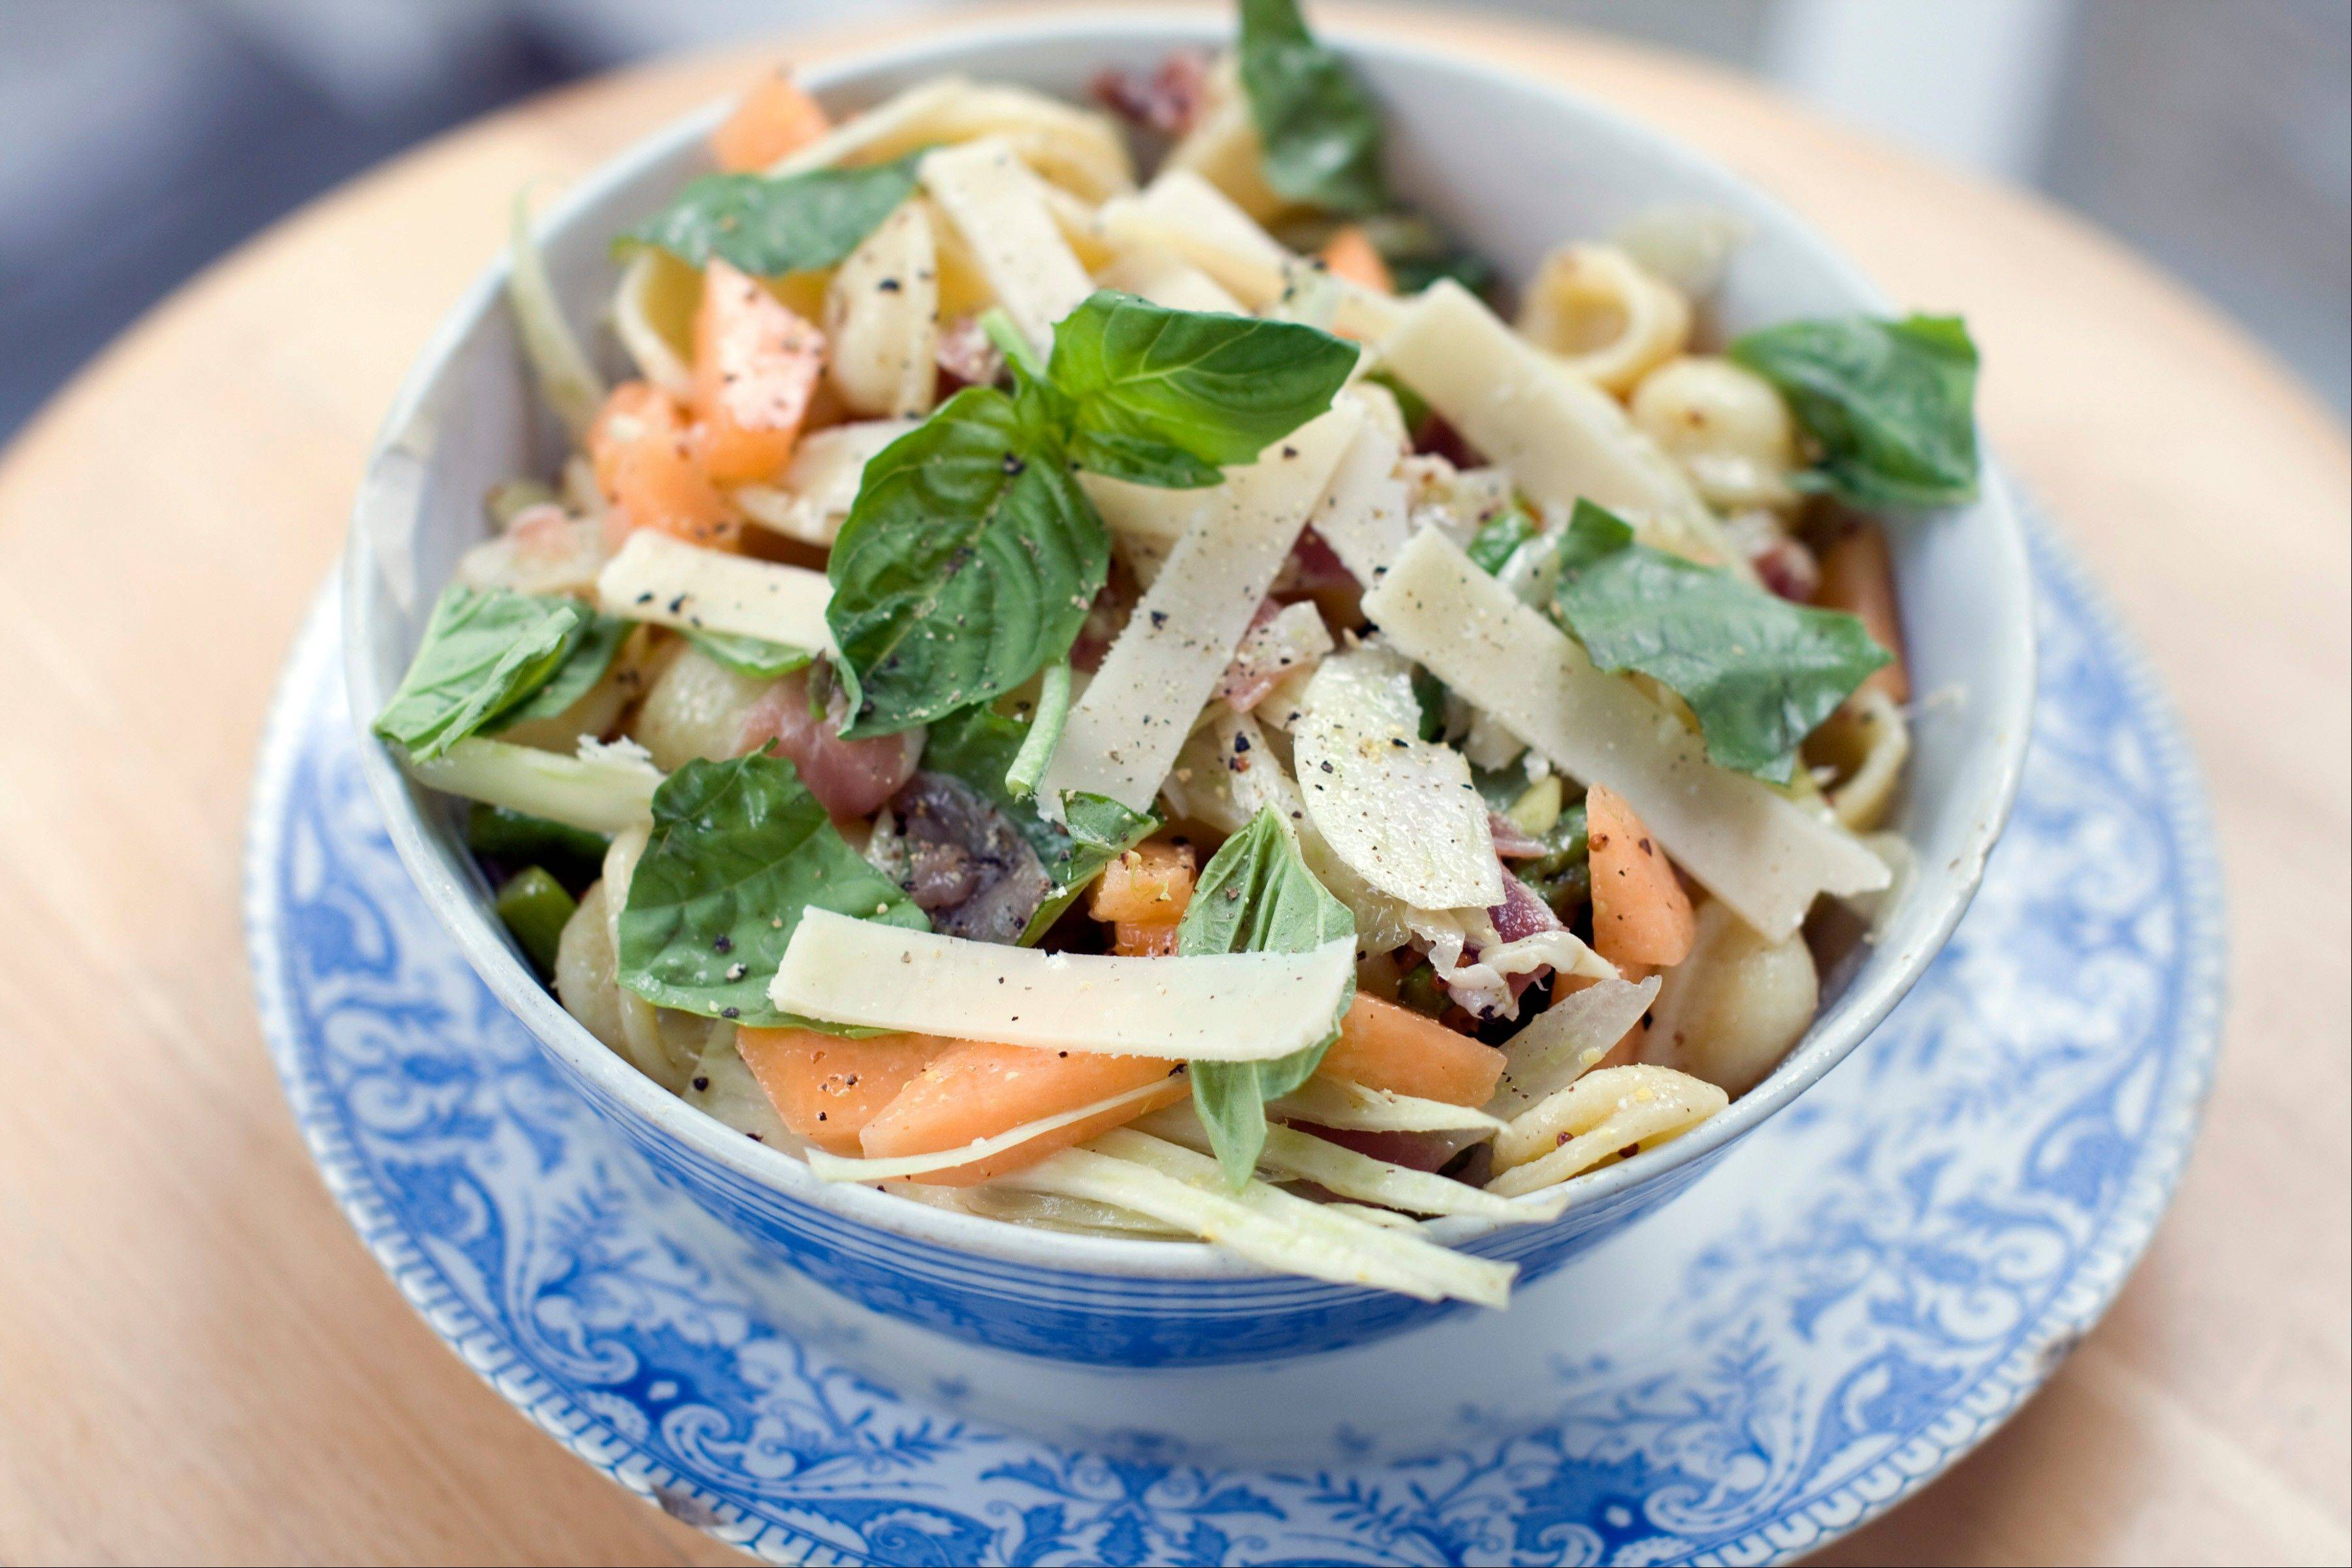 Pasta salad should be easy. It should be a just-throw-the-ingredients-in-a-bowl kind of summer food like this prosciutto, cantaloupe and orecchiette combo.